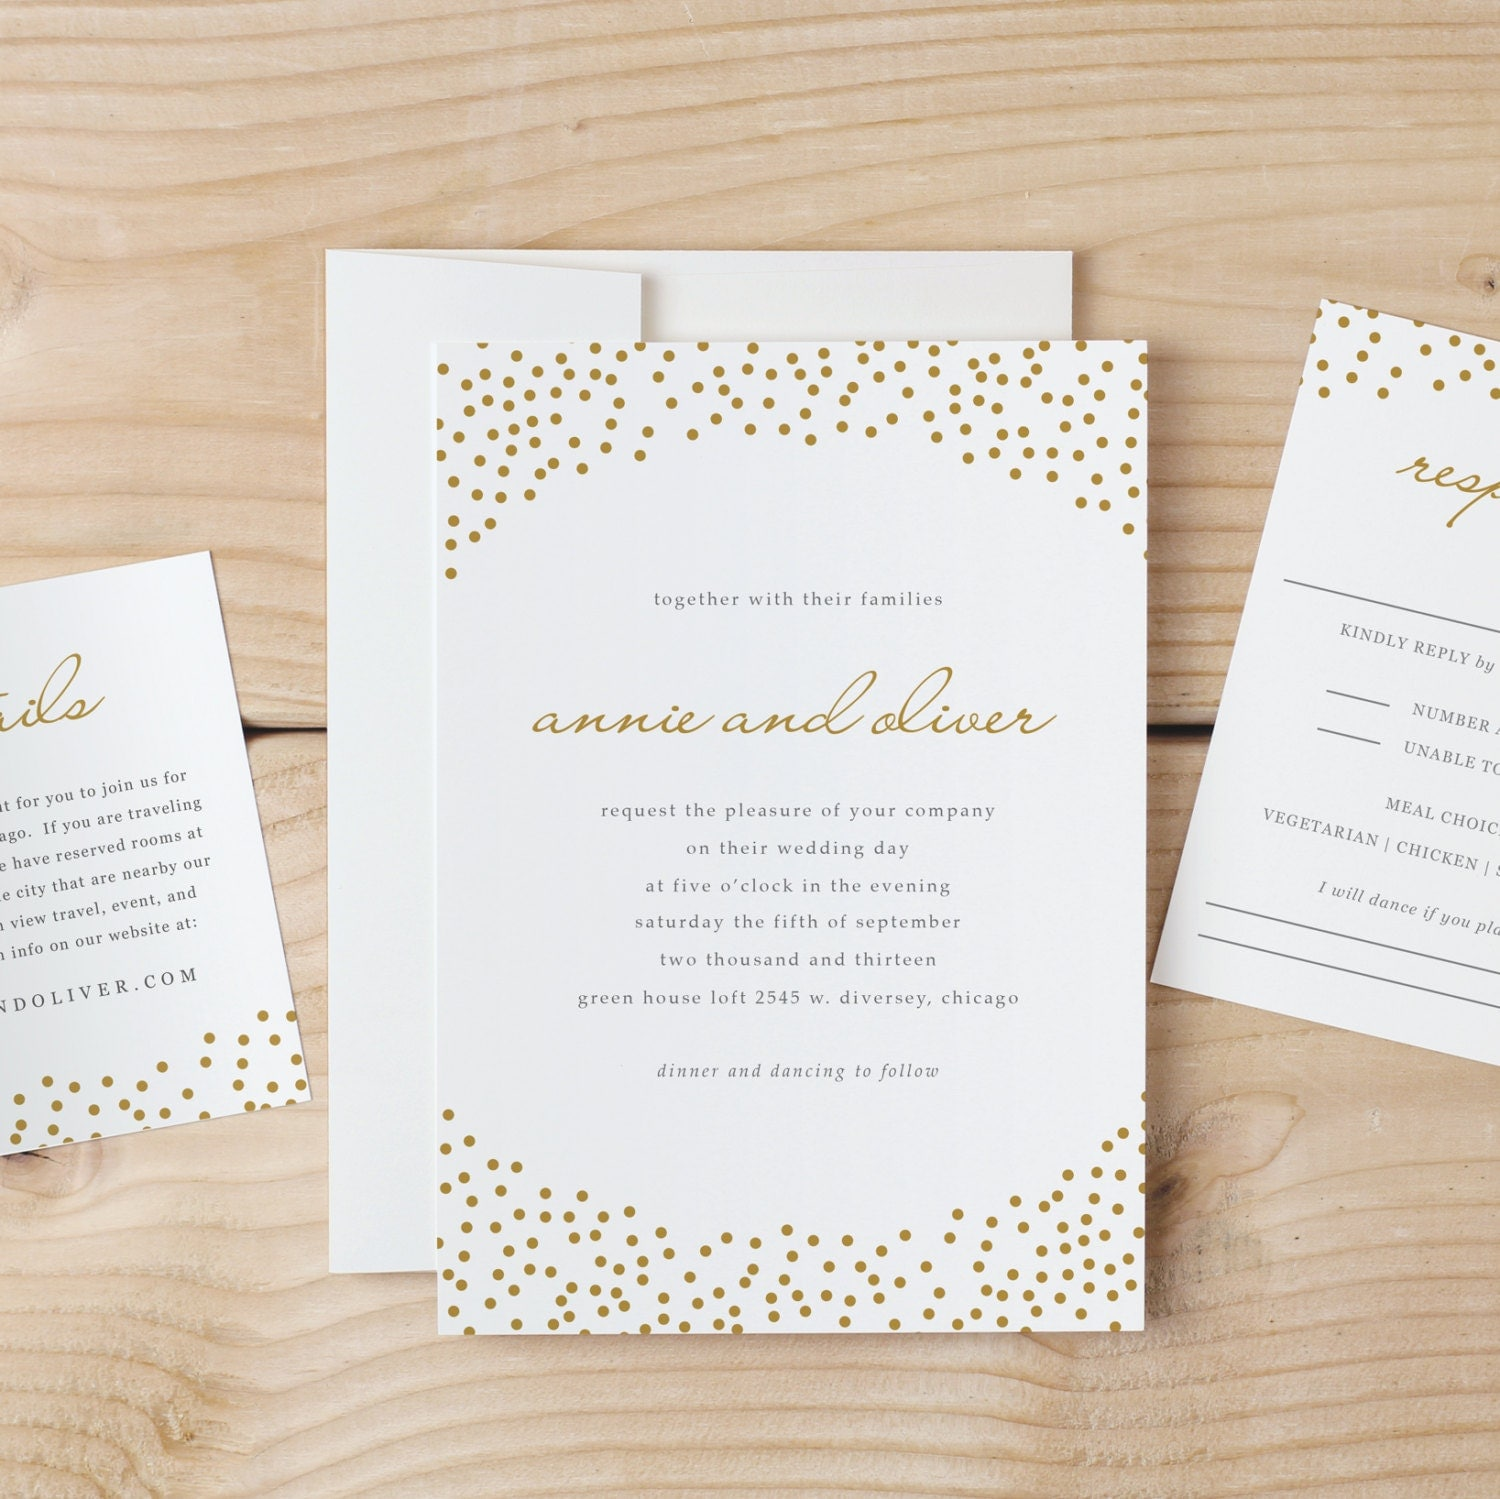 Wedding Invitation Template Download - Gold Dots - Word or Pages ...